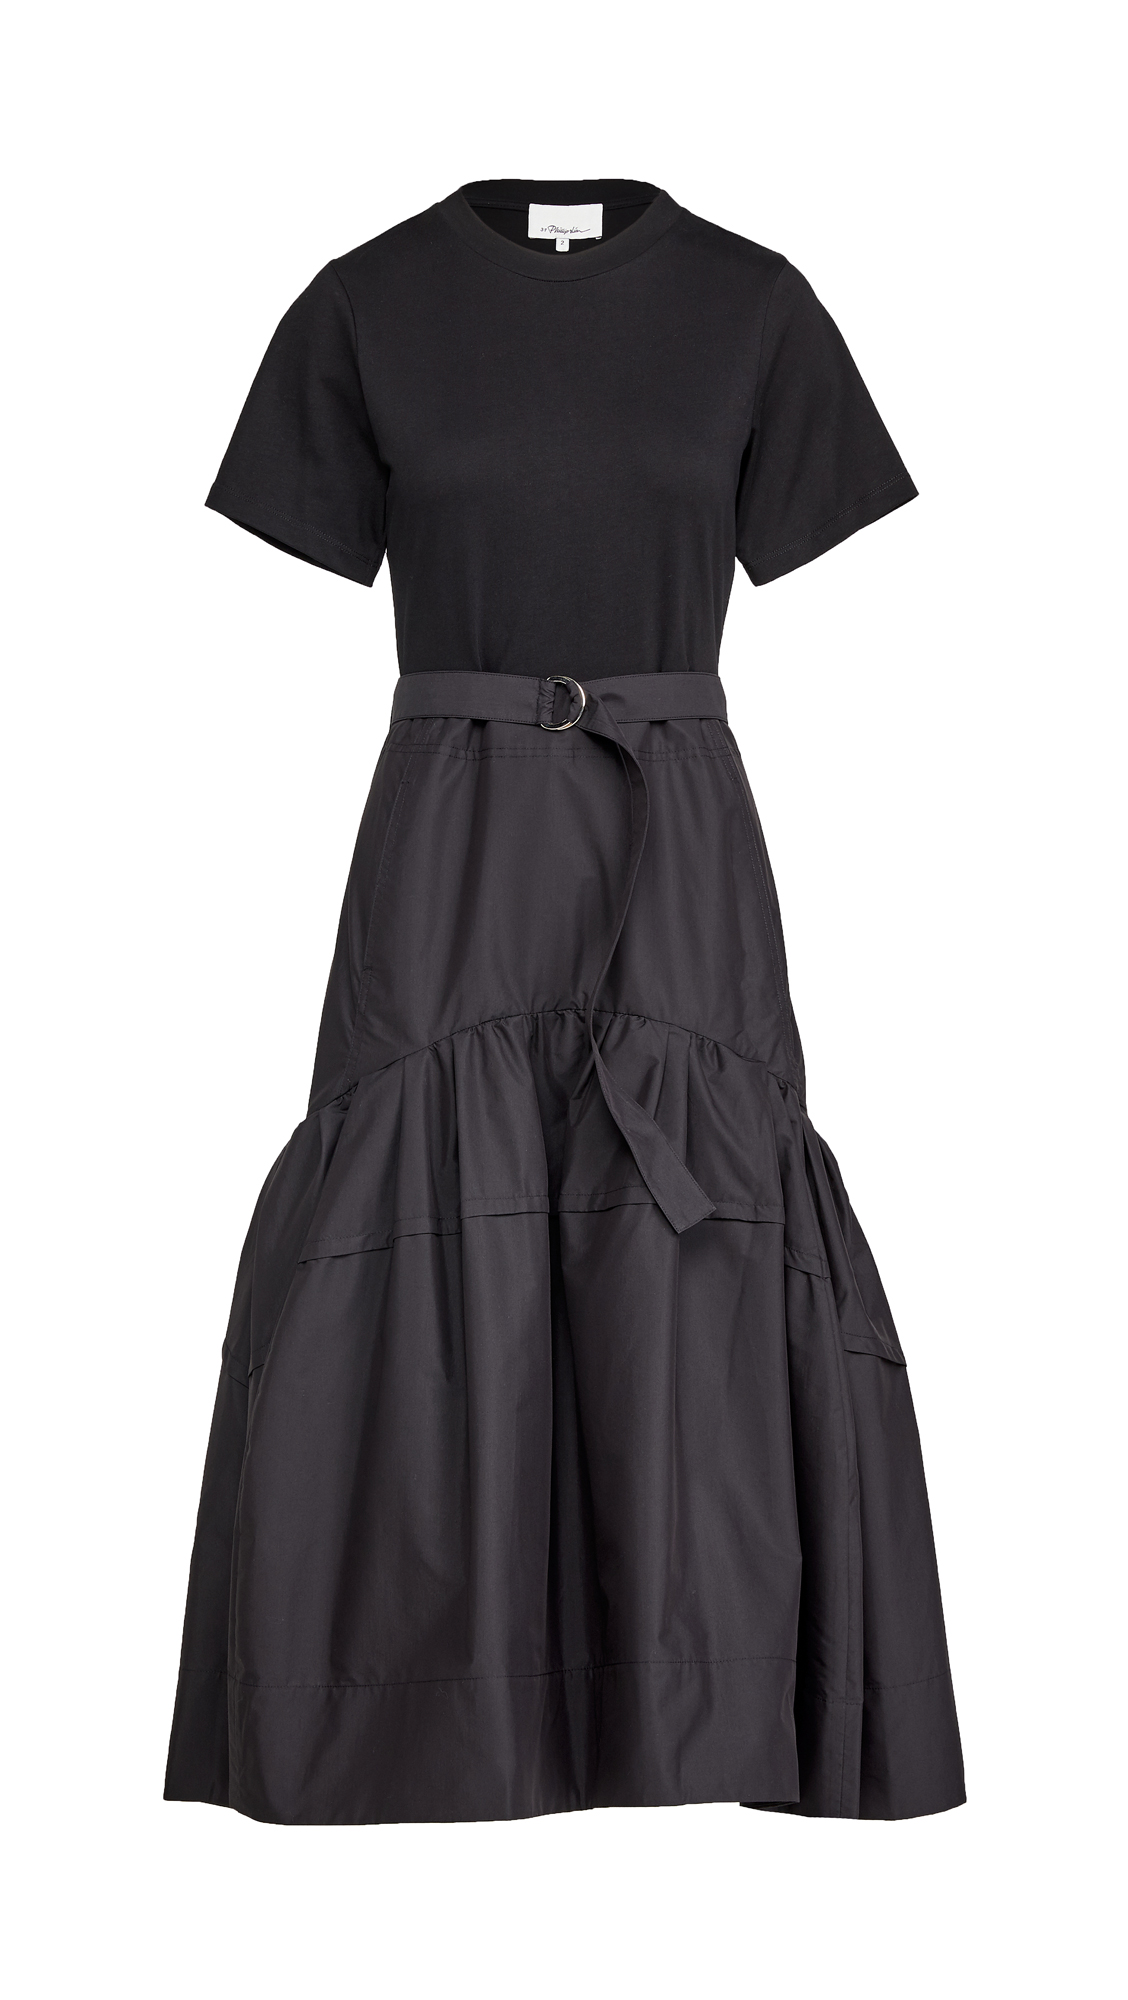 3.1 Phillip Lim Short Sleeve Belted Tee Dress